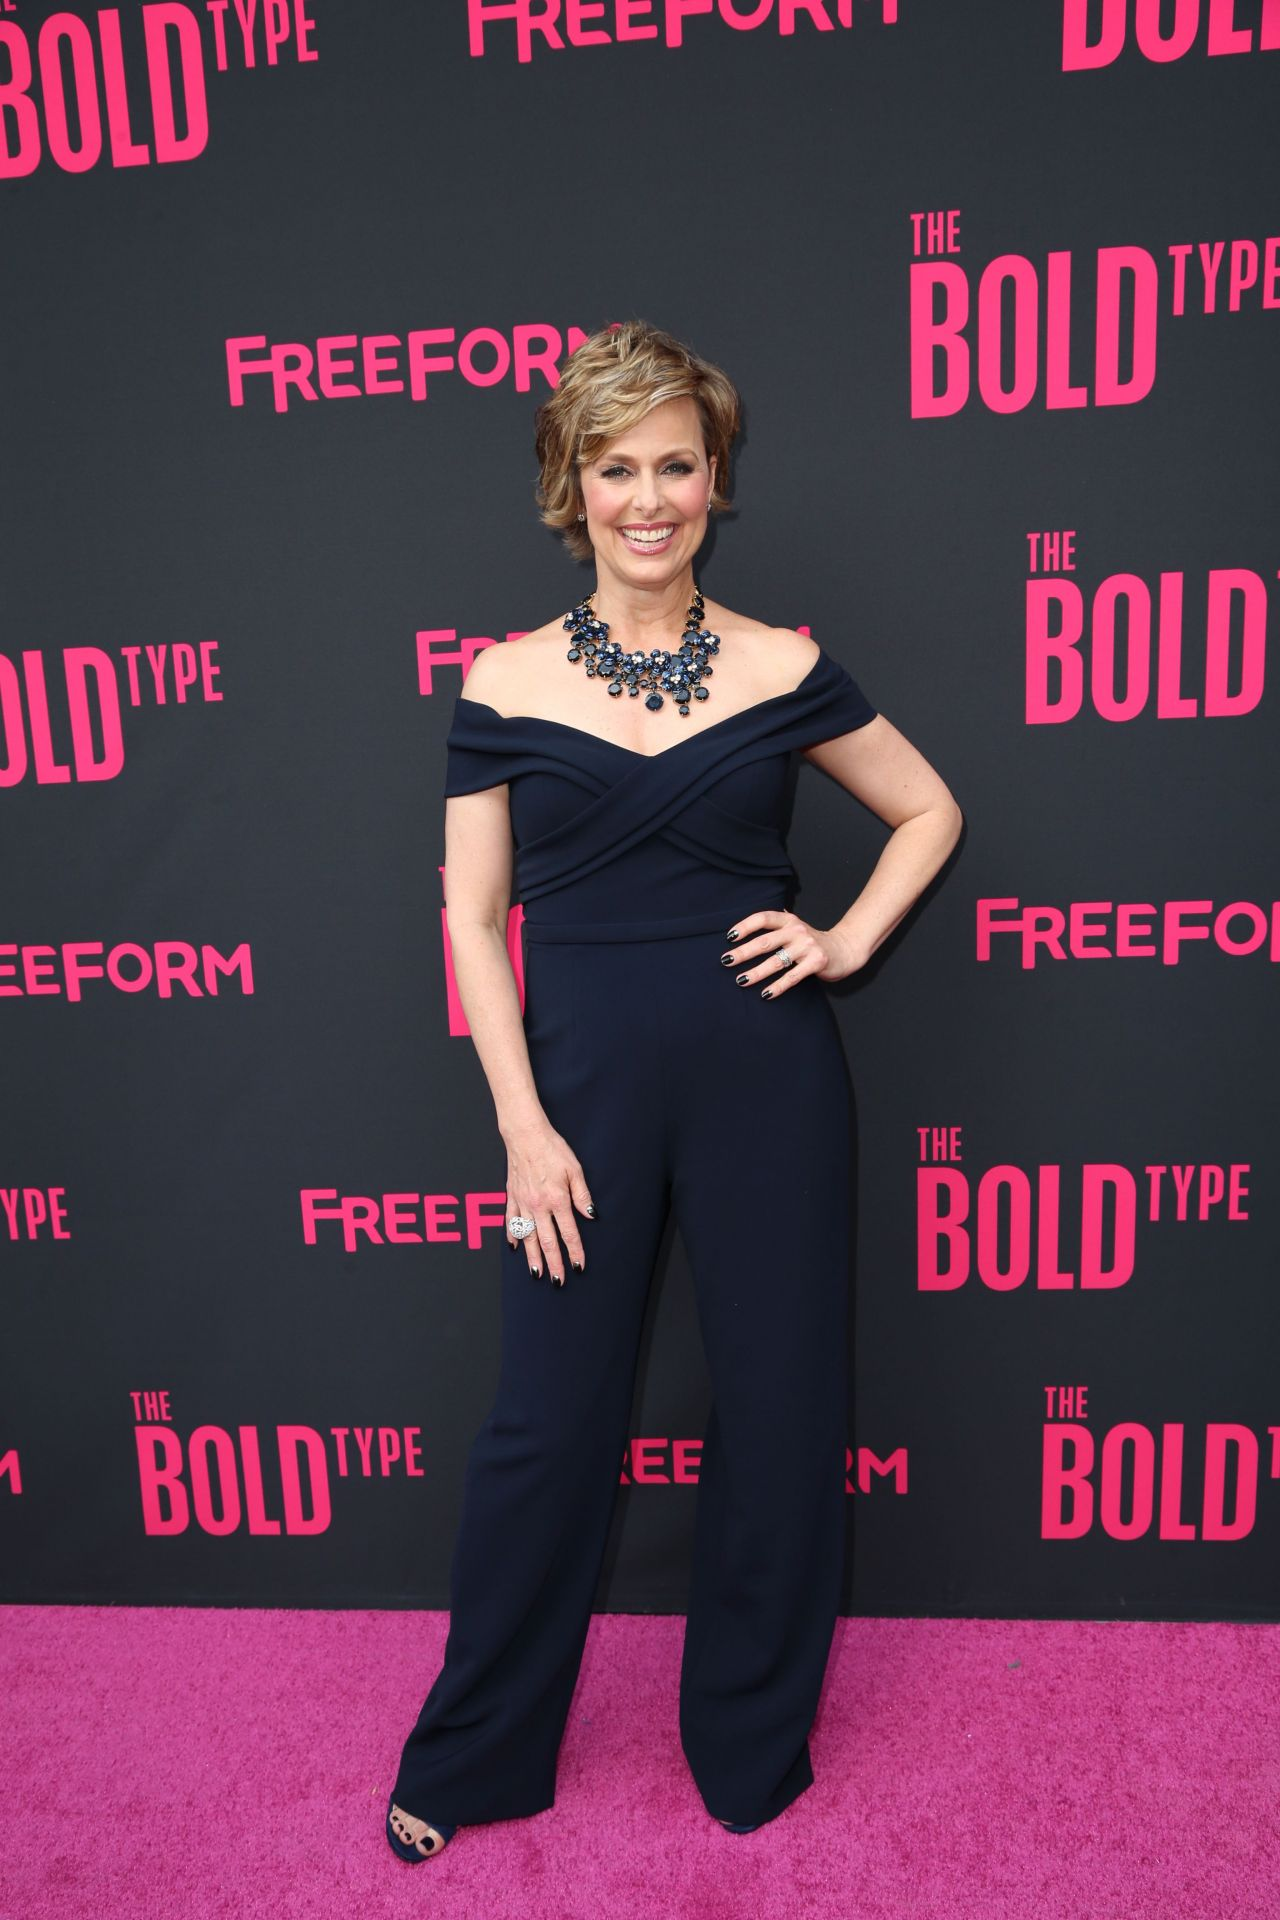 melora hardin the bold type tv show premiere in nyc 06 22 2017. Black Bedroom Furniture Sets. Home Design Ideas